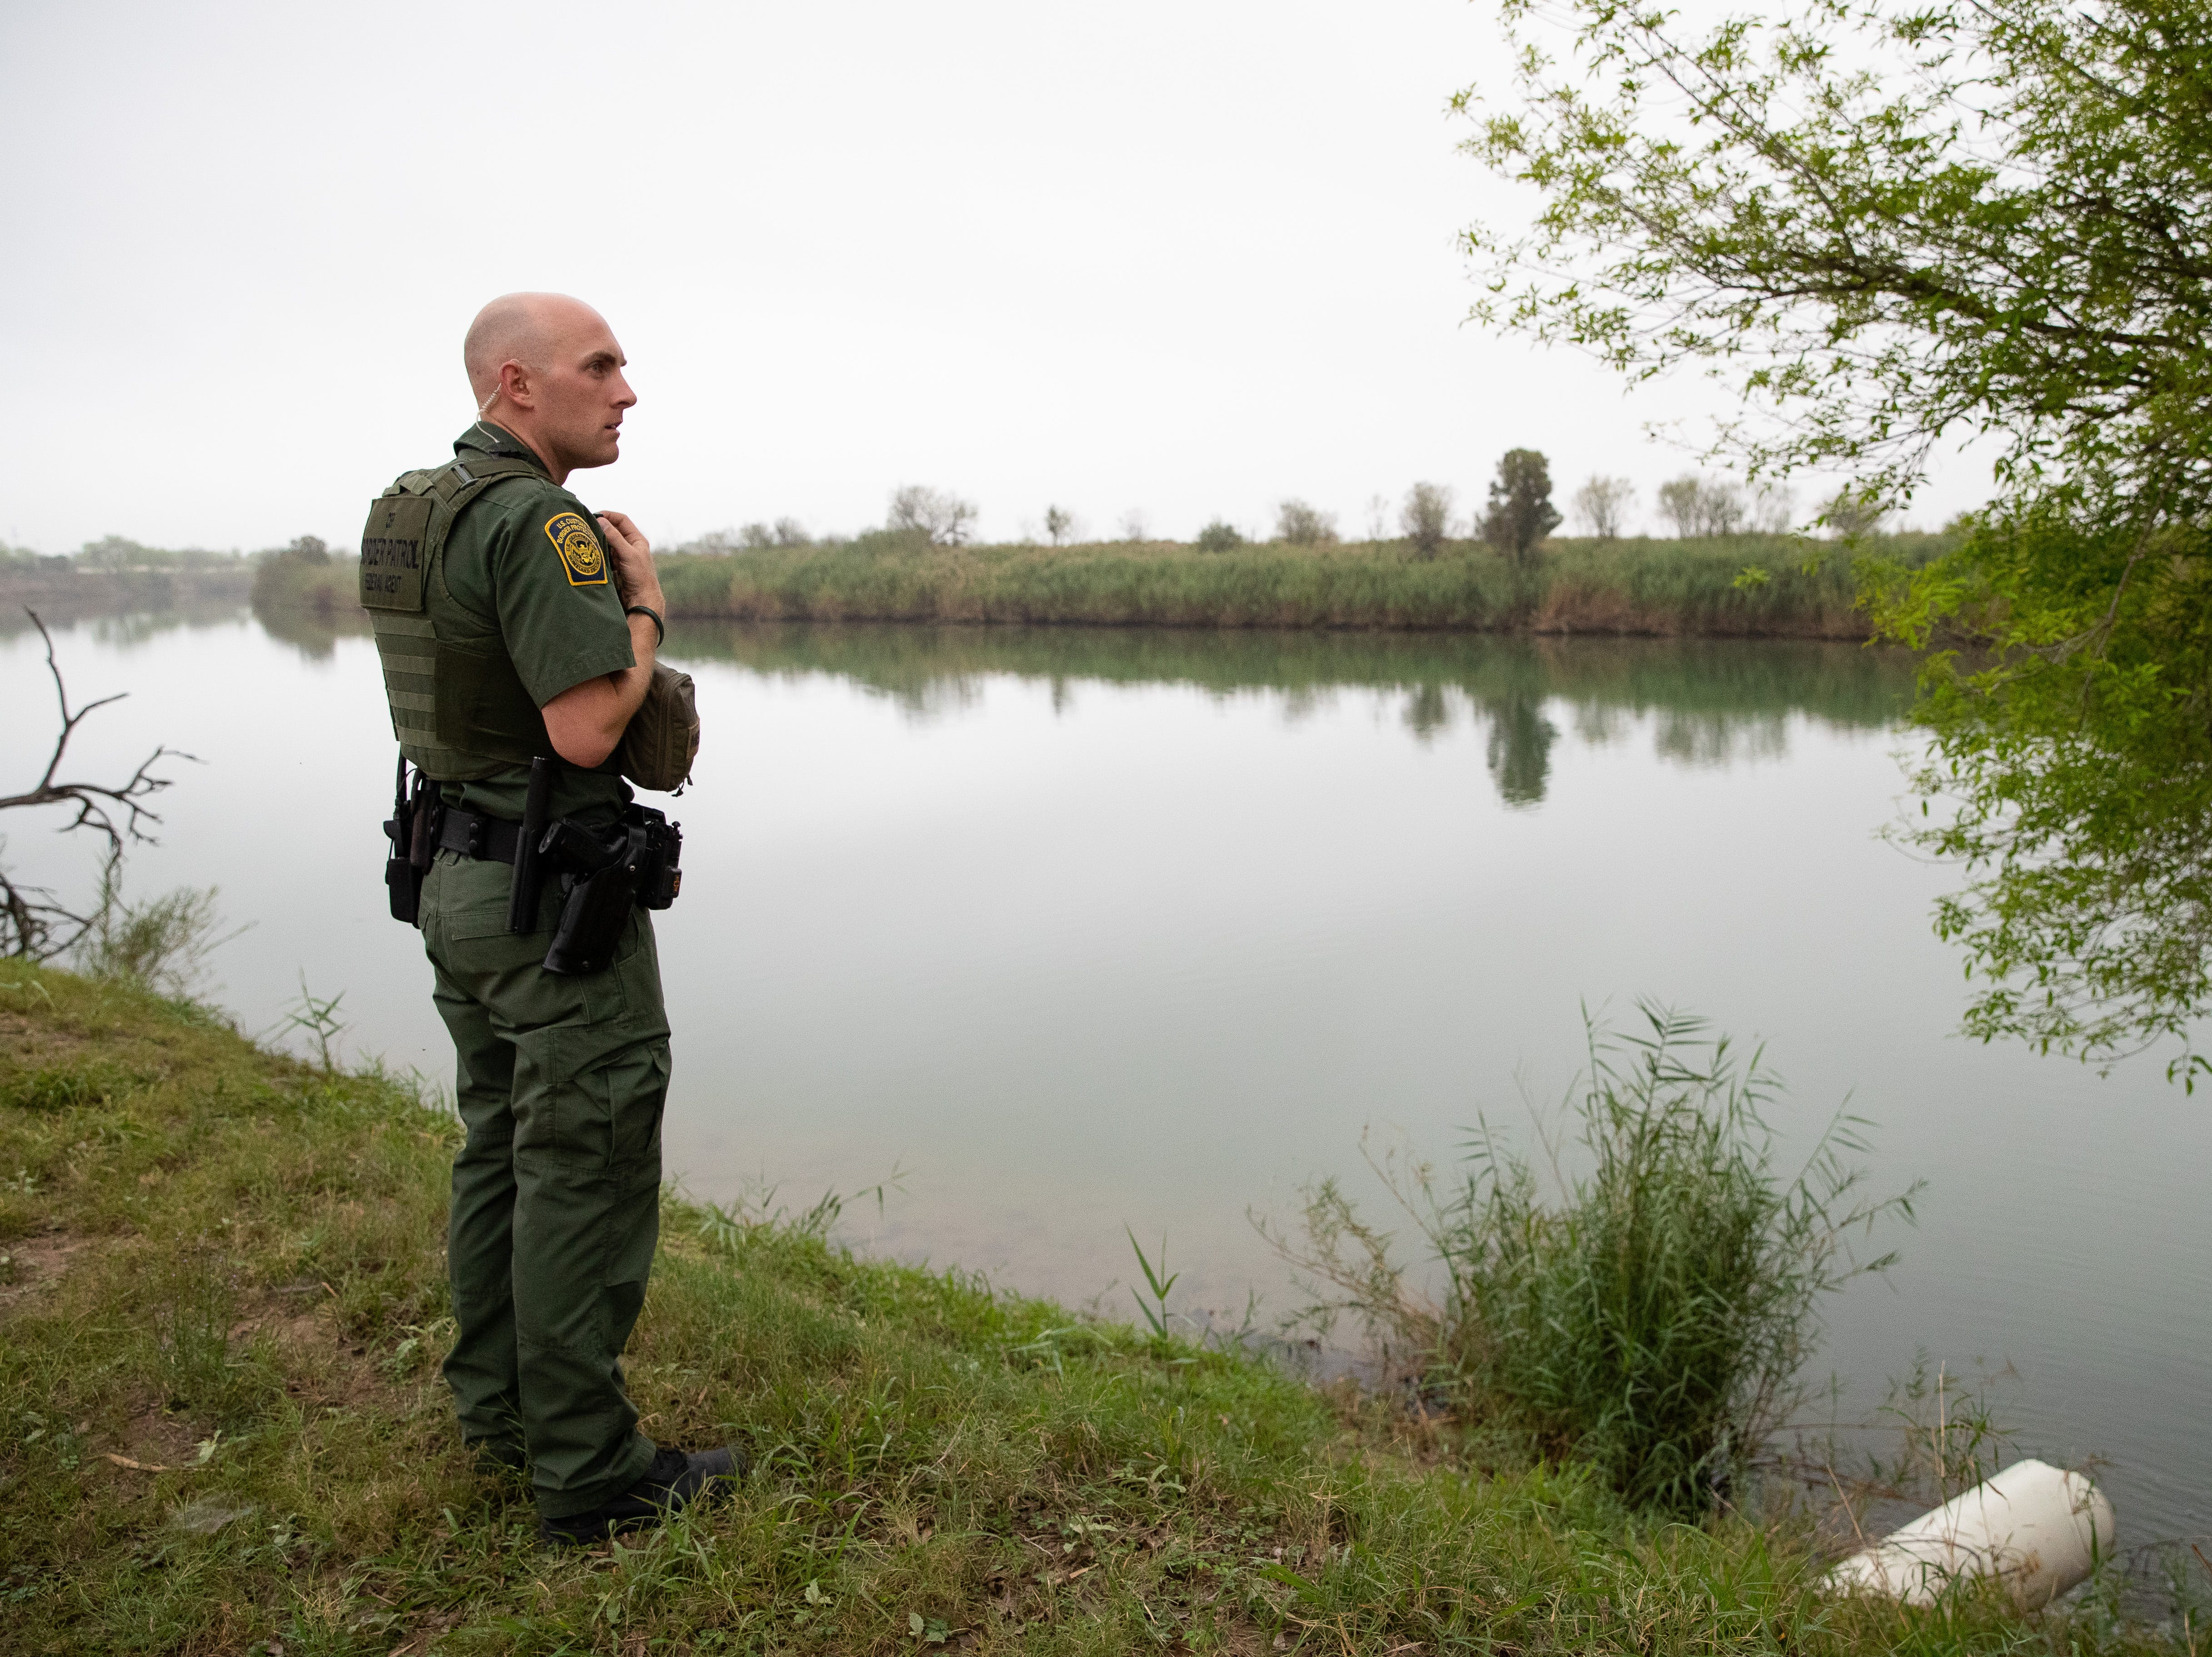 A Border Patrol Agent over looks the Rio Grande River in to Mexico after a report of raft in the river near Penitas, TX on Tuesday, Feb. 26, 2019.